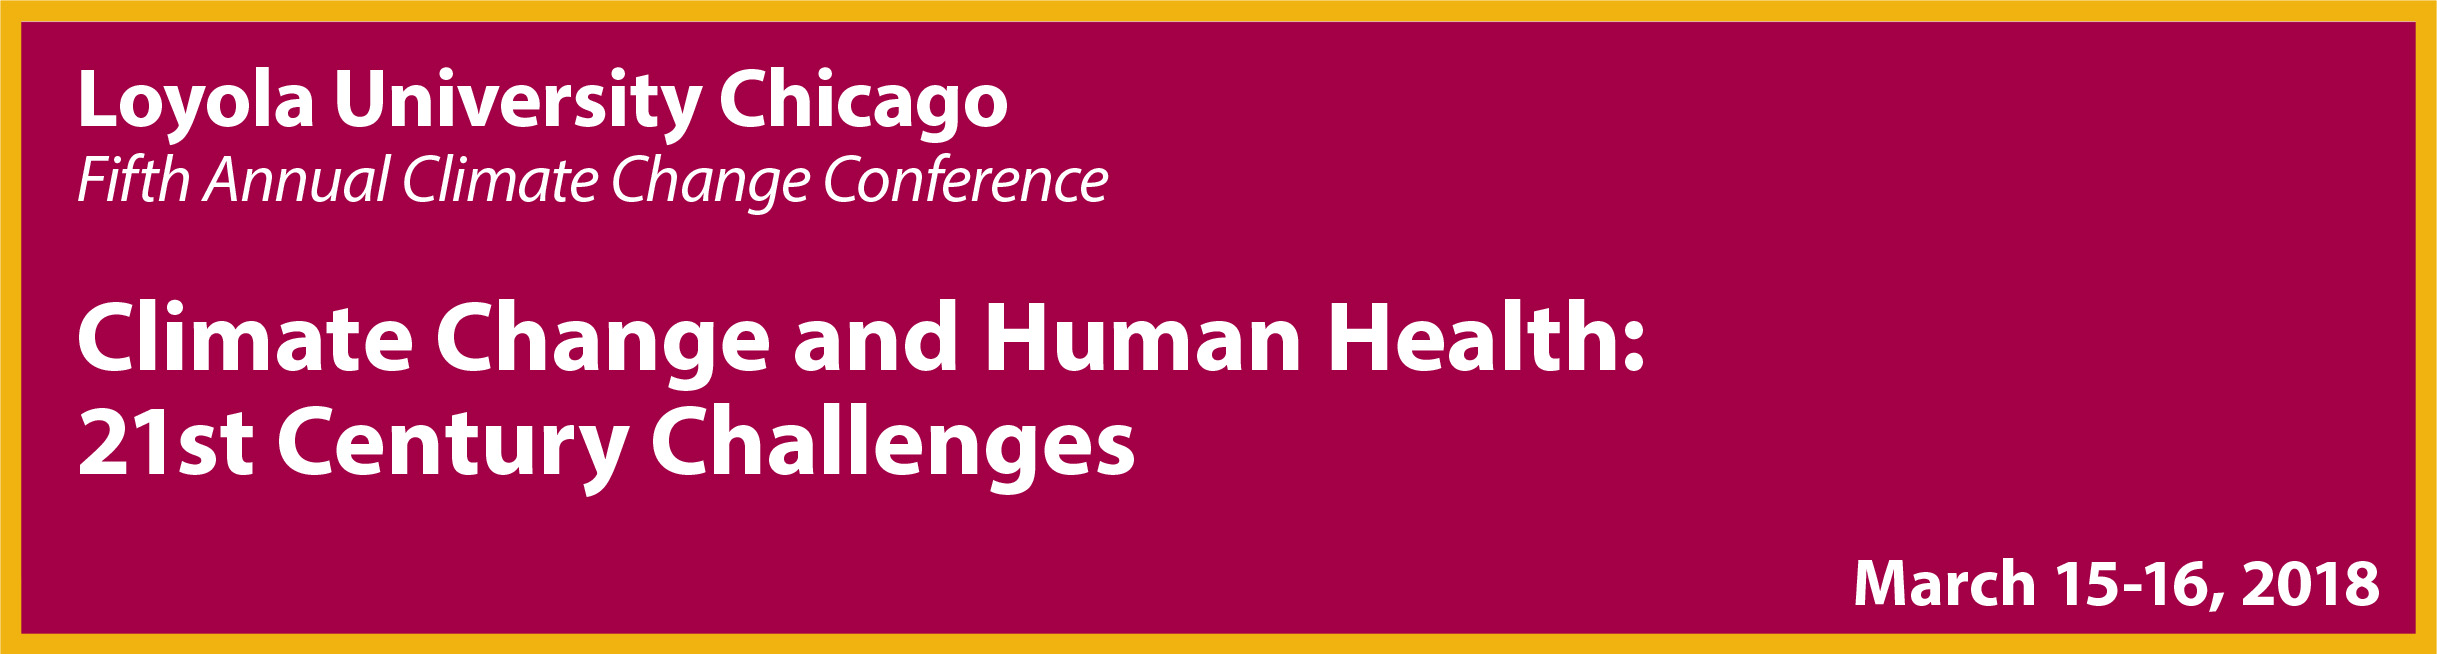 Loyola's 5th Annual Climate Change Conference